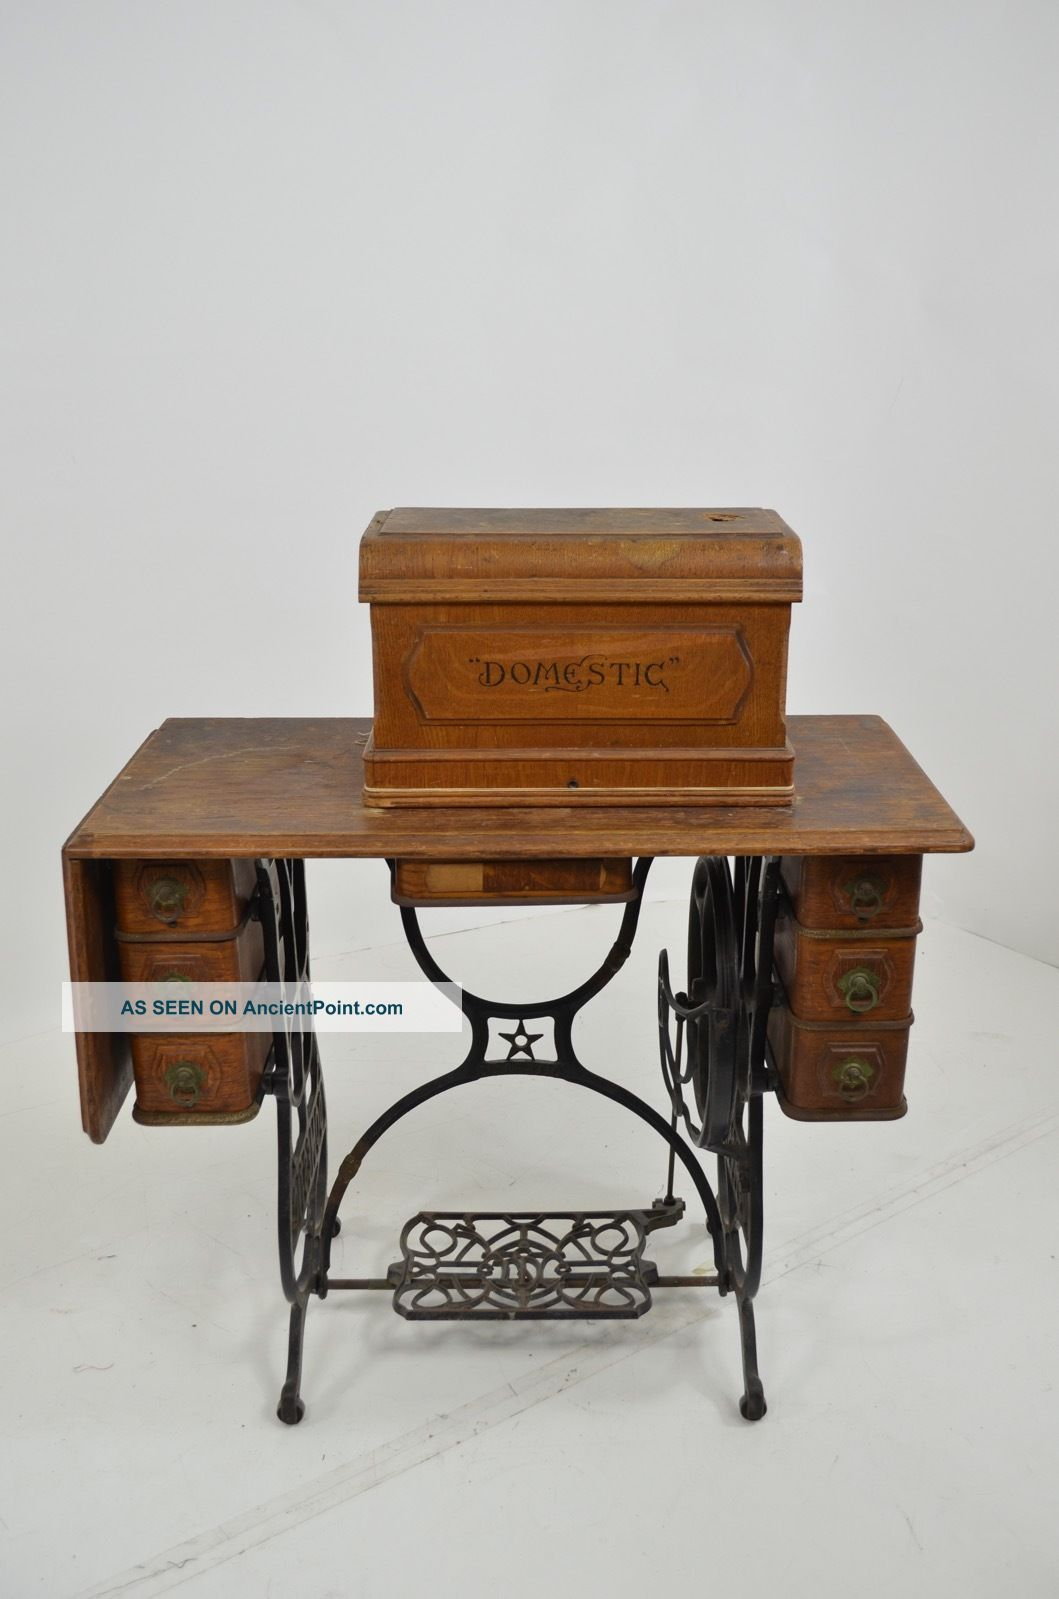 Antique Domestic Sewing Machine Cabinet Table Early 1900s Sewing Machines photo